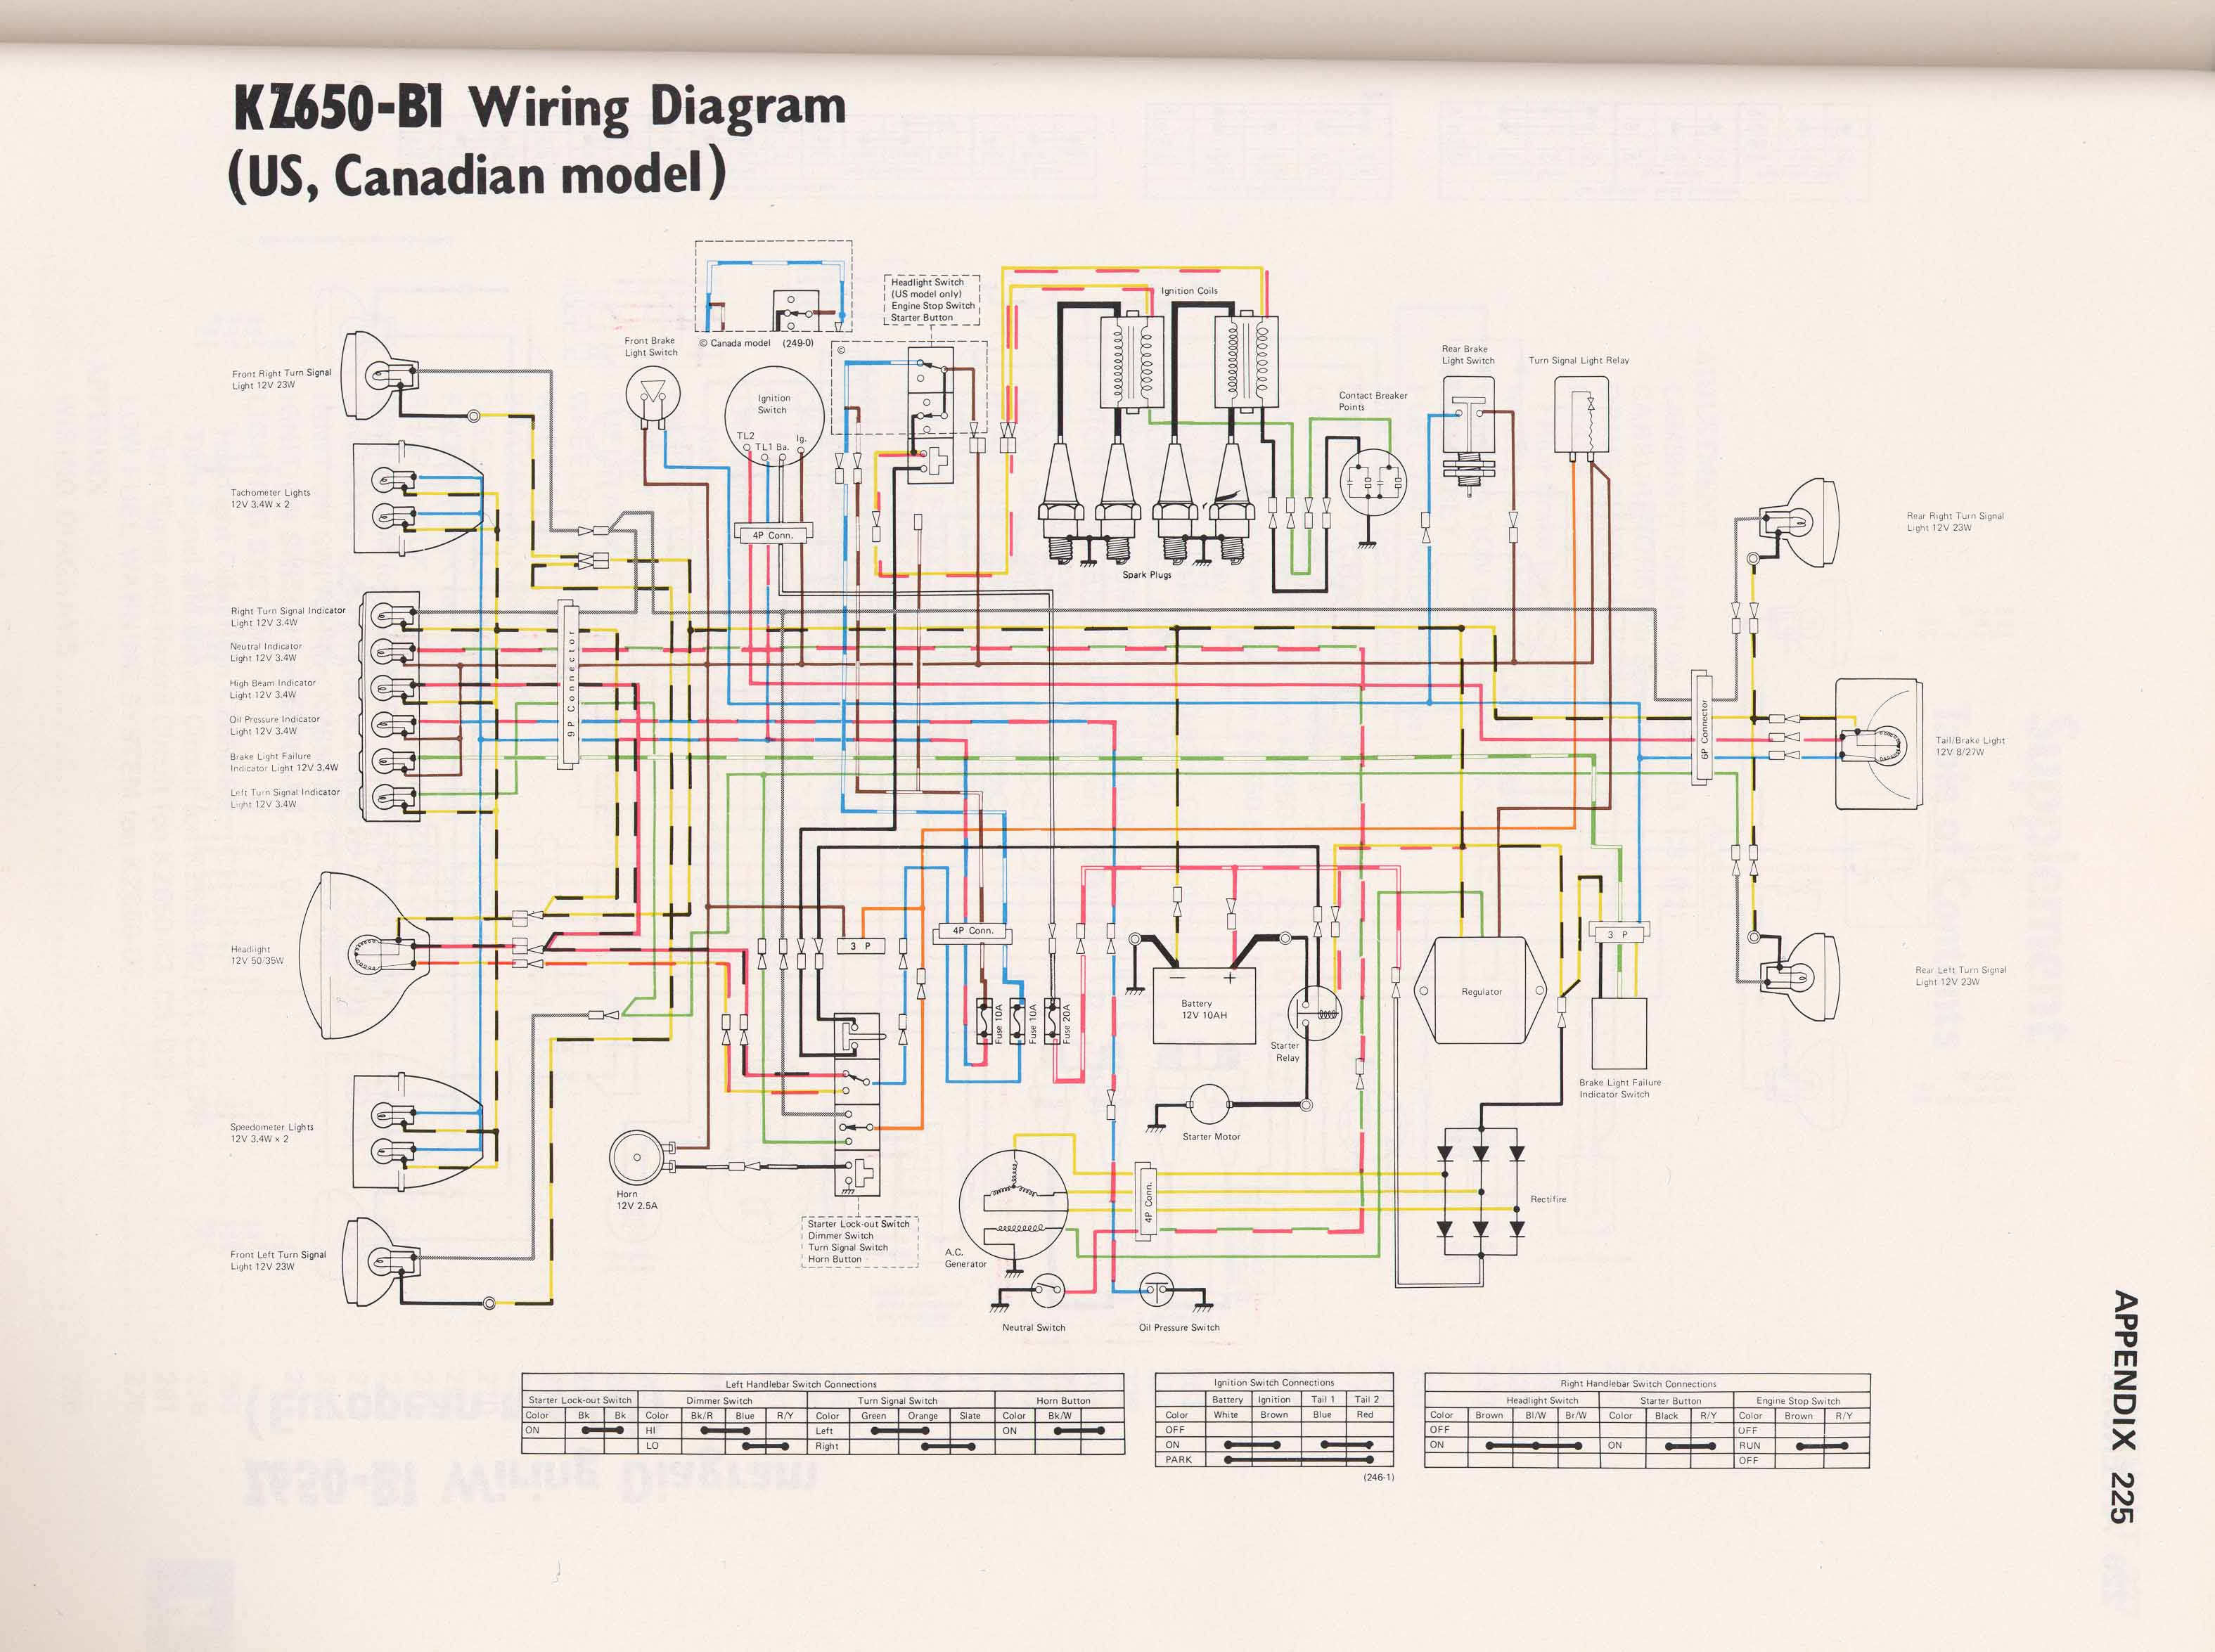 Zx9r B Wiring Diagram Automotive Cat 5 Plug Cylinder Key Library Rh 45 Yoobi De Rj Jack